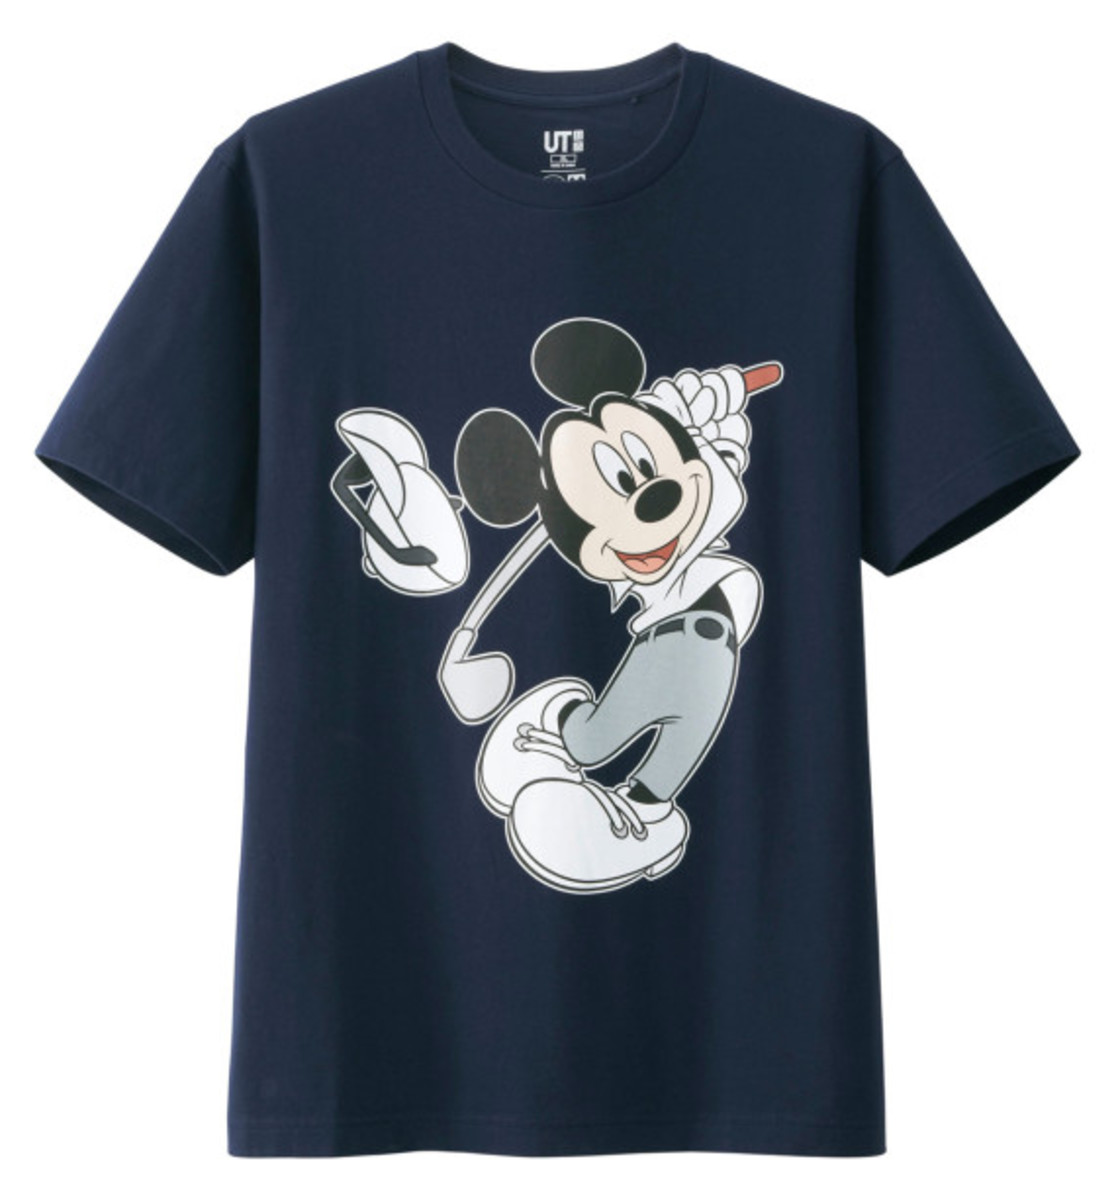 disney-uniqlo-mickey-plays-t-shirt-collection-07